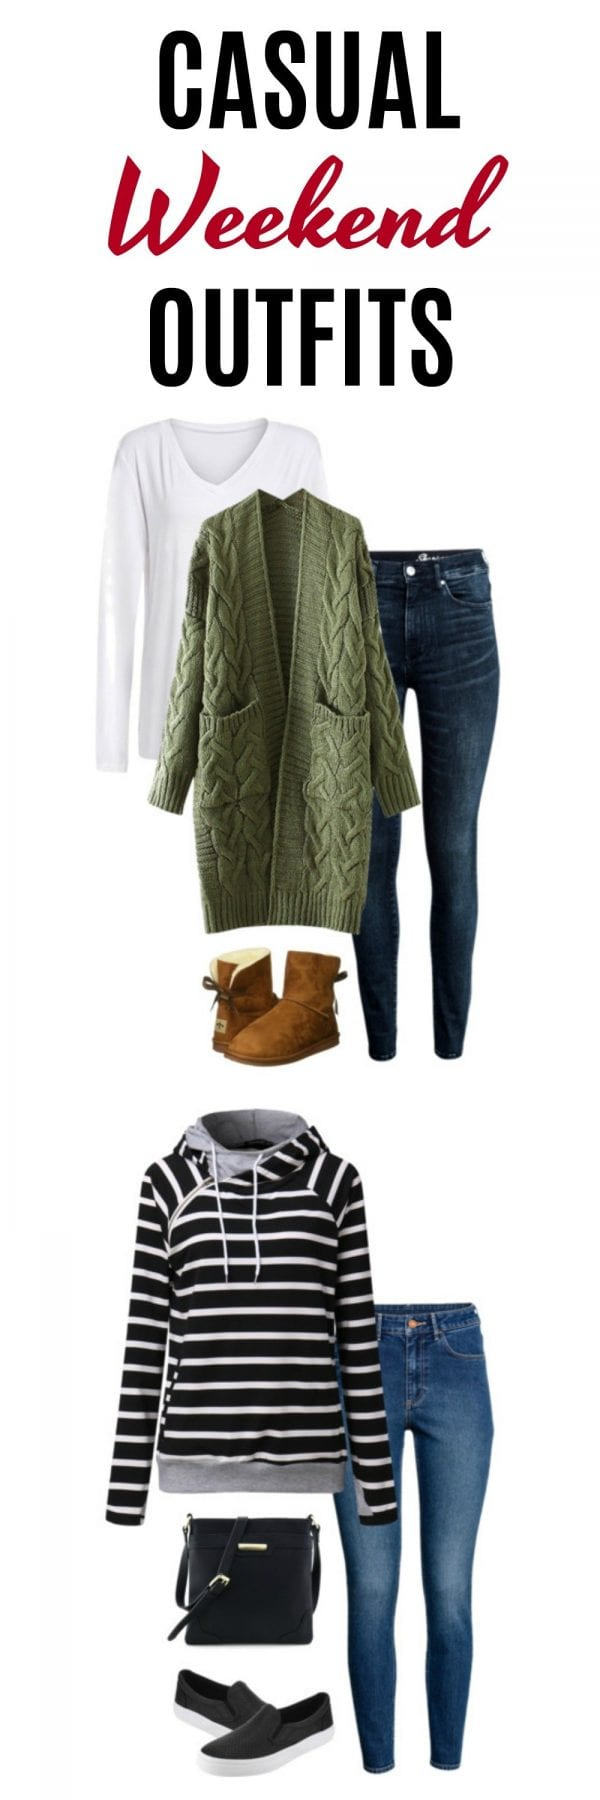 Ideas for Weekend Outfits